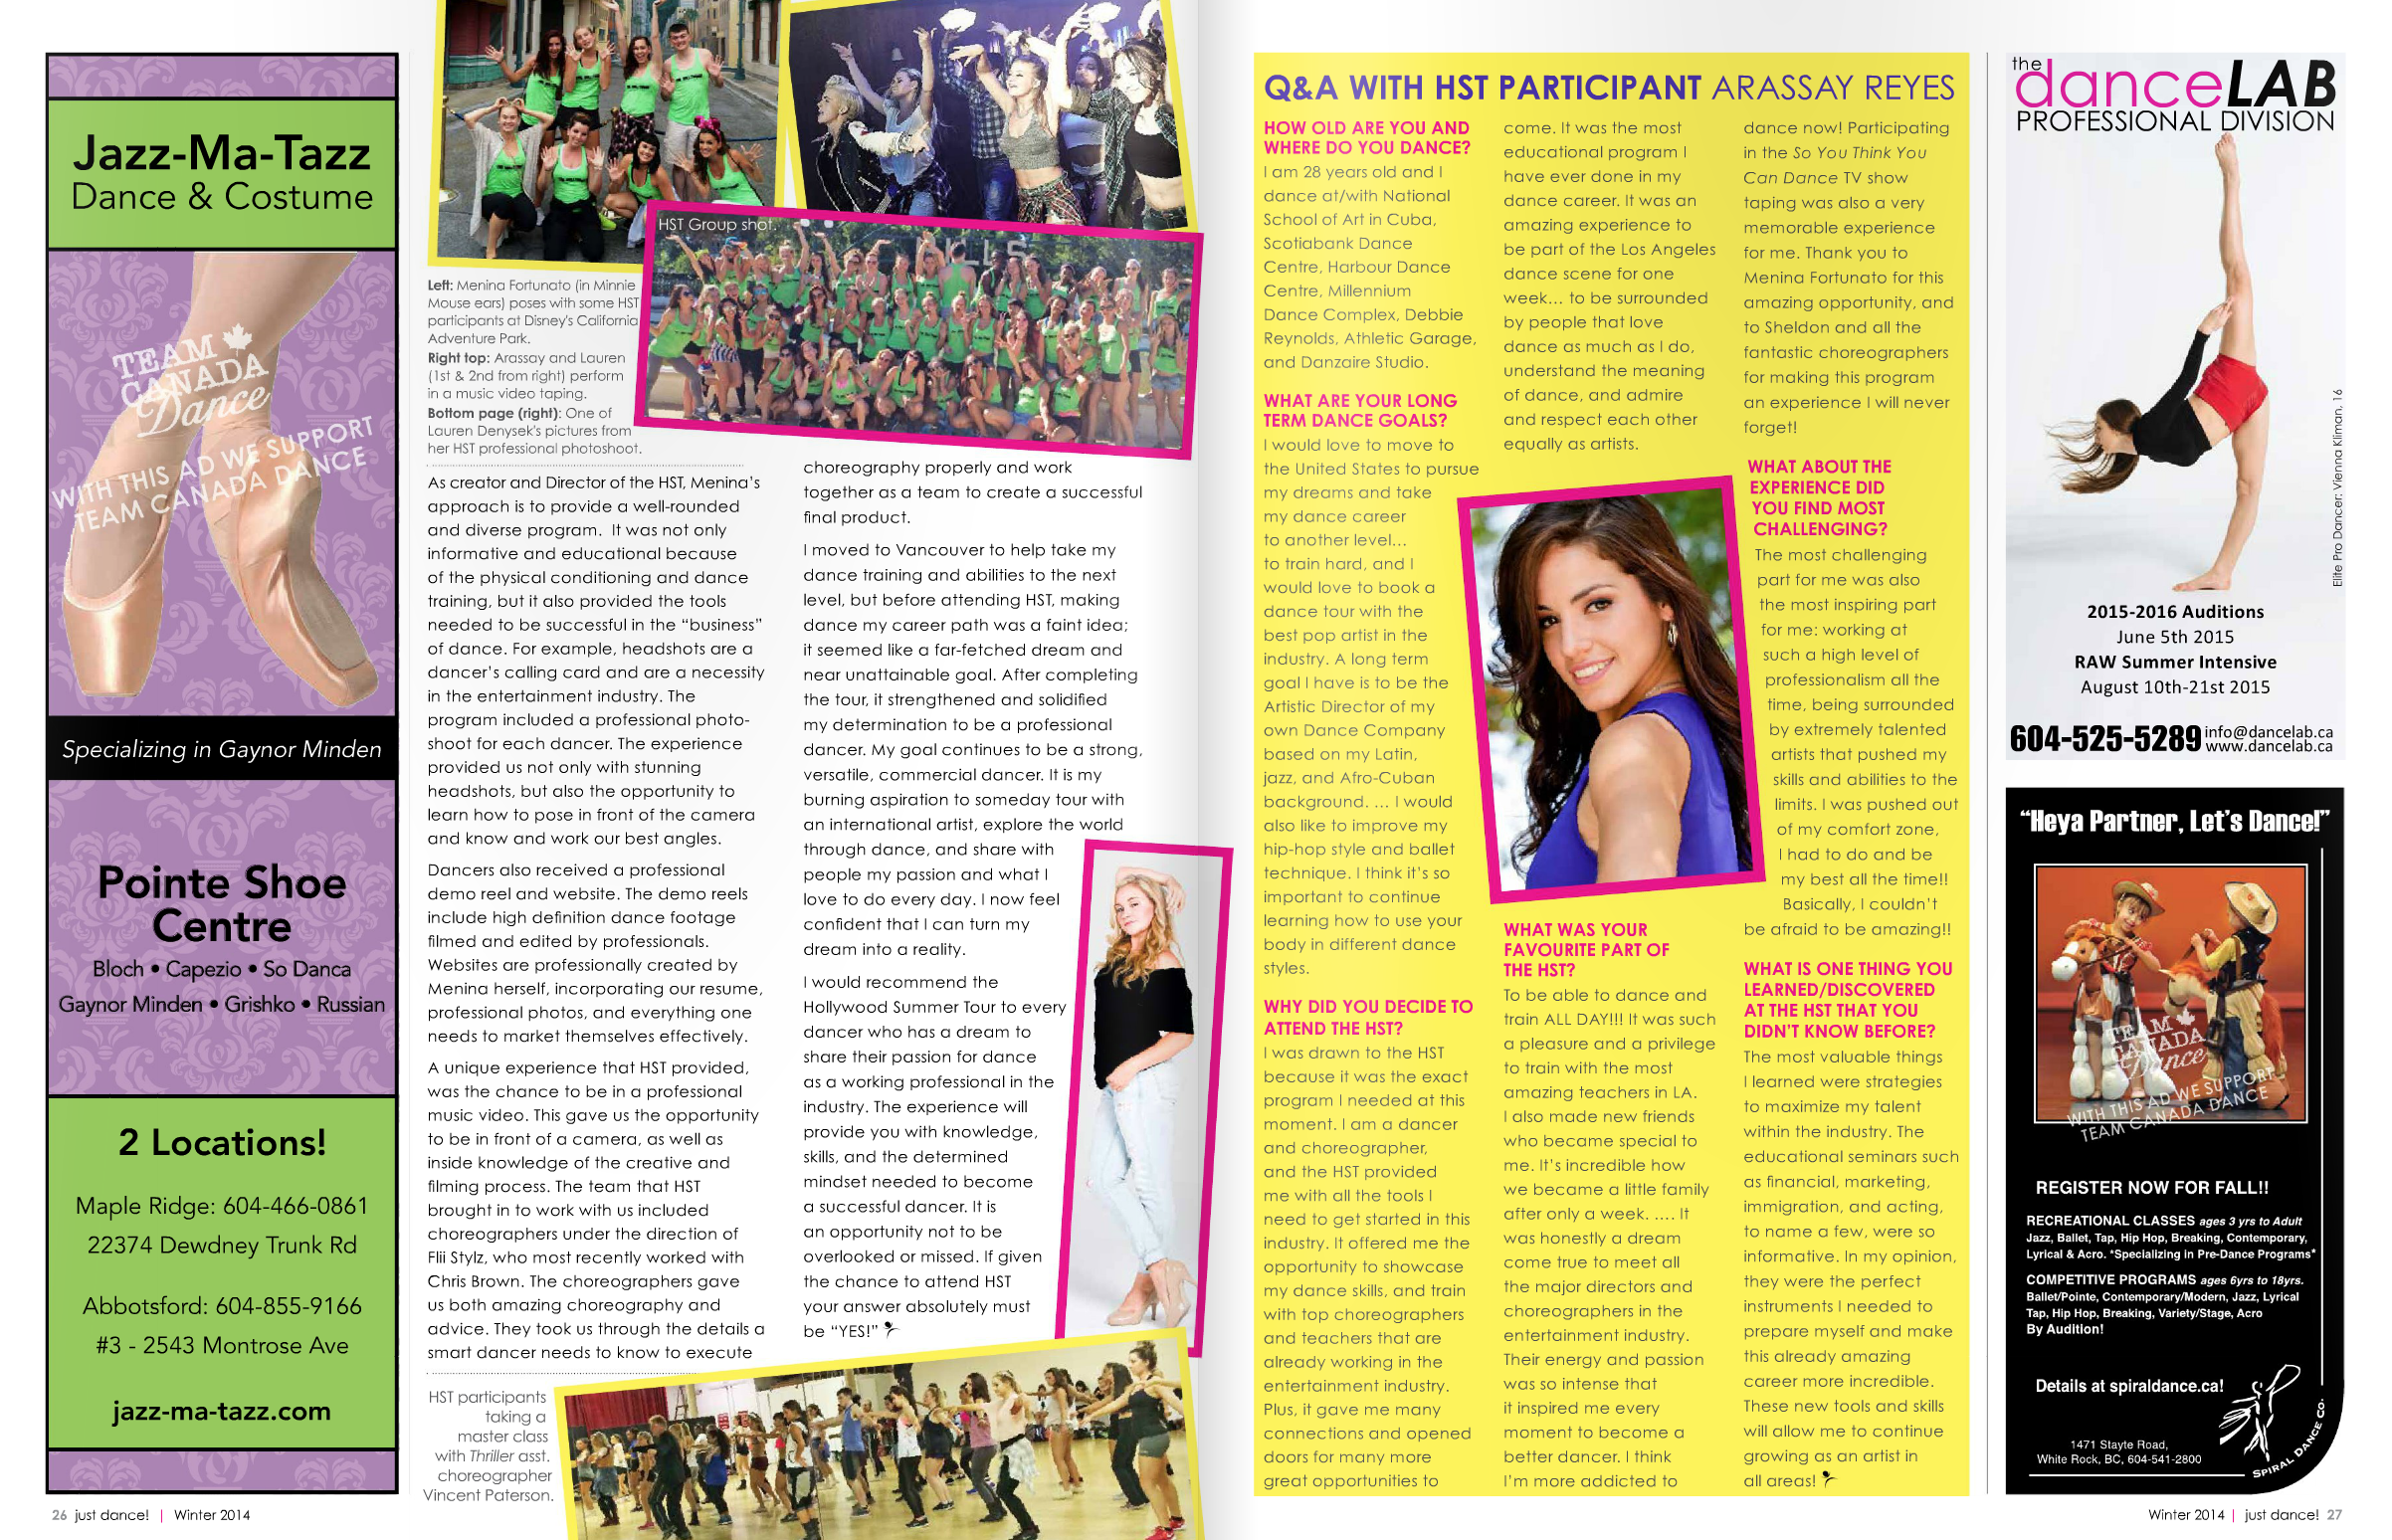 Page 2-3 (article)